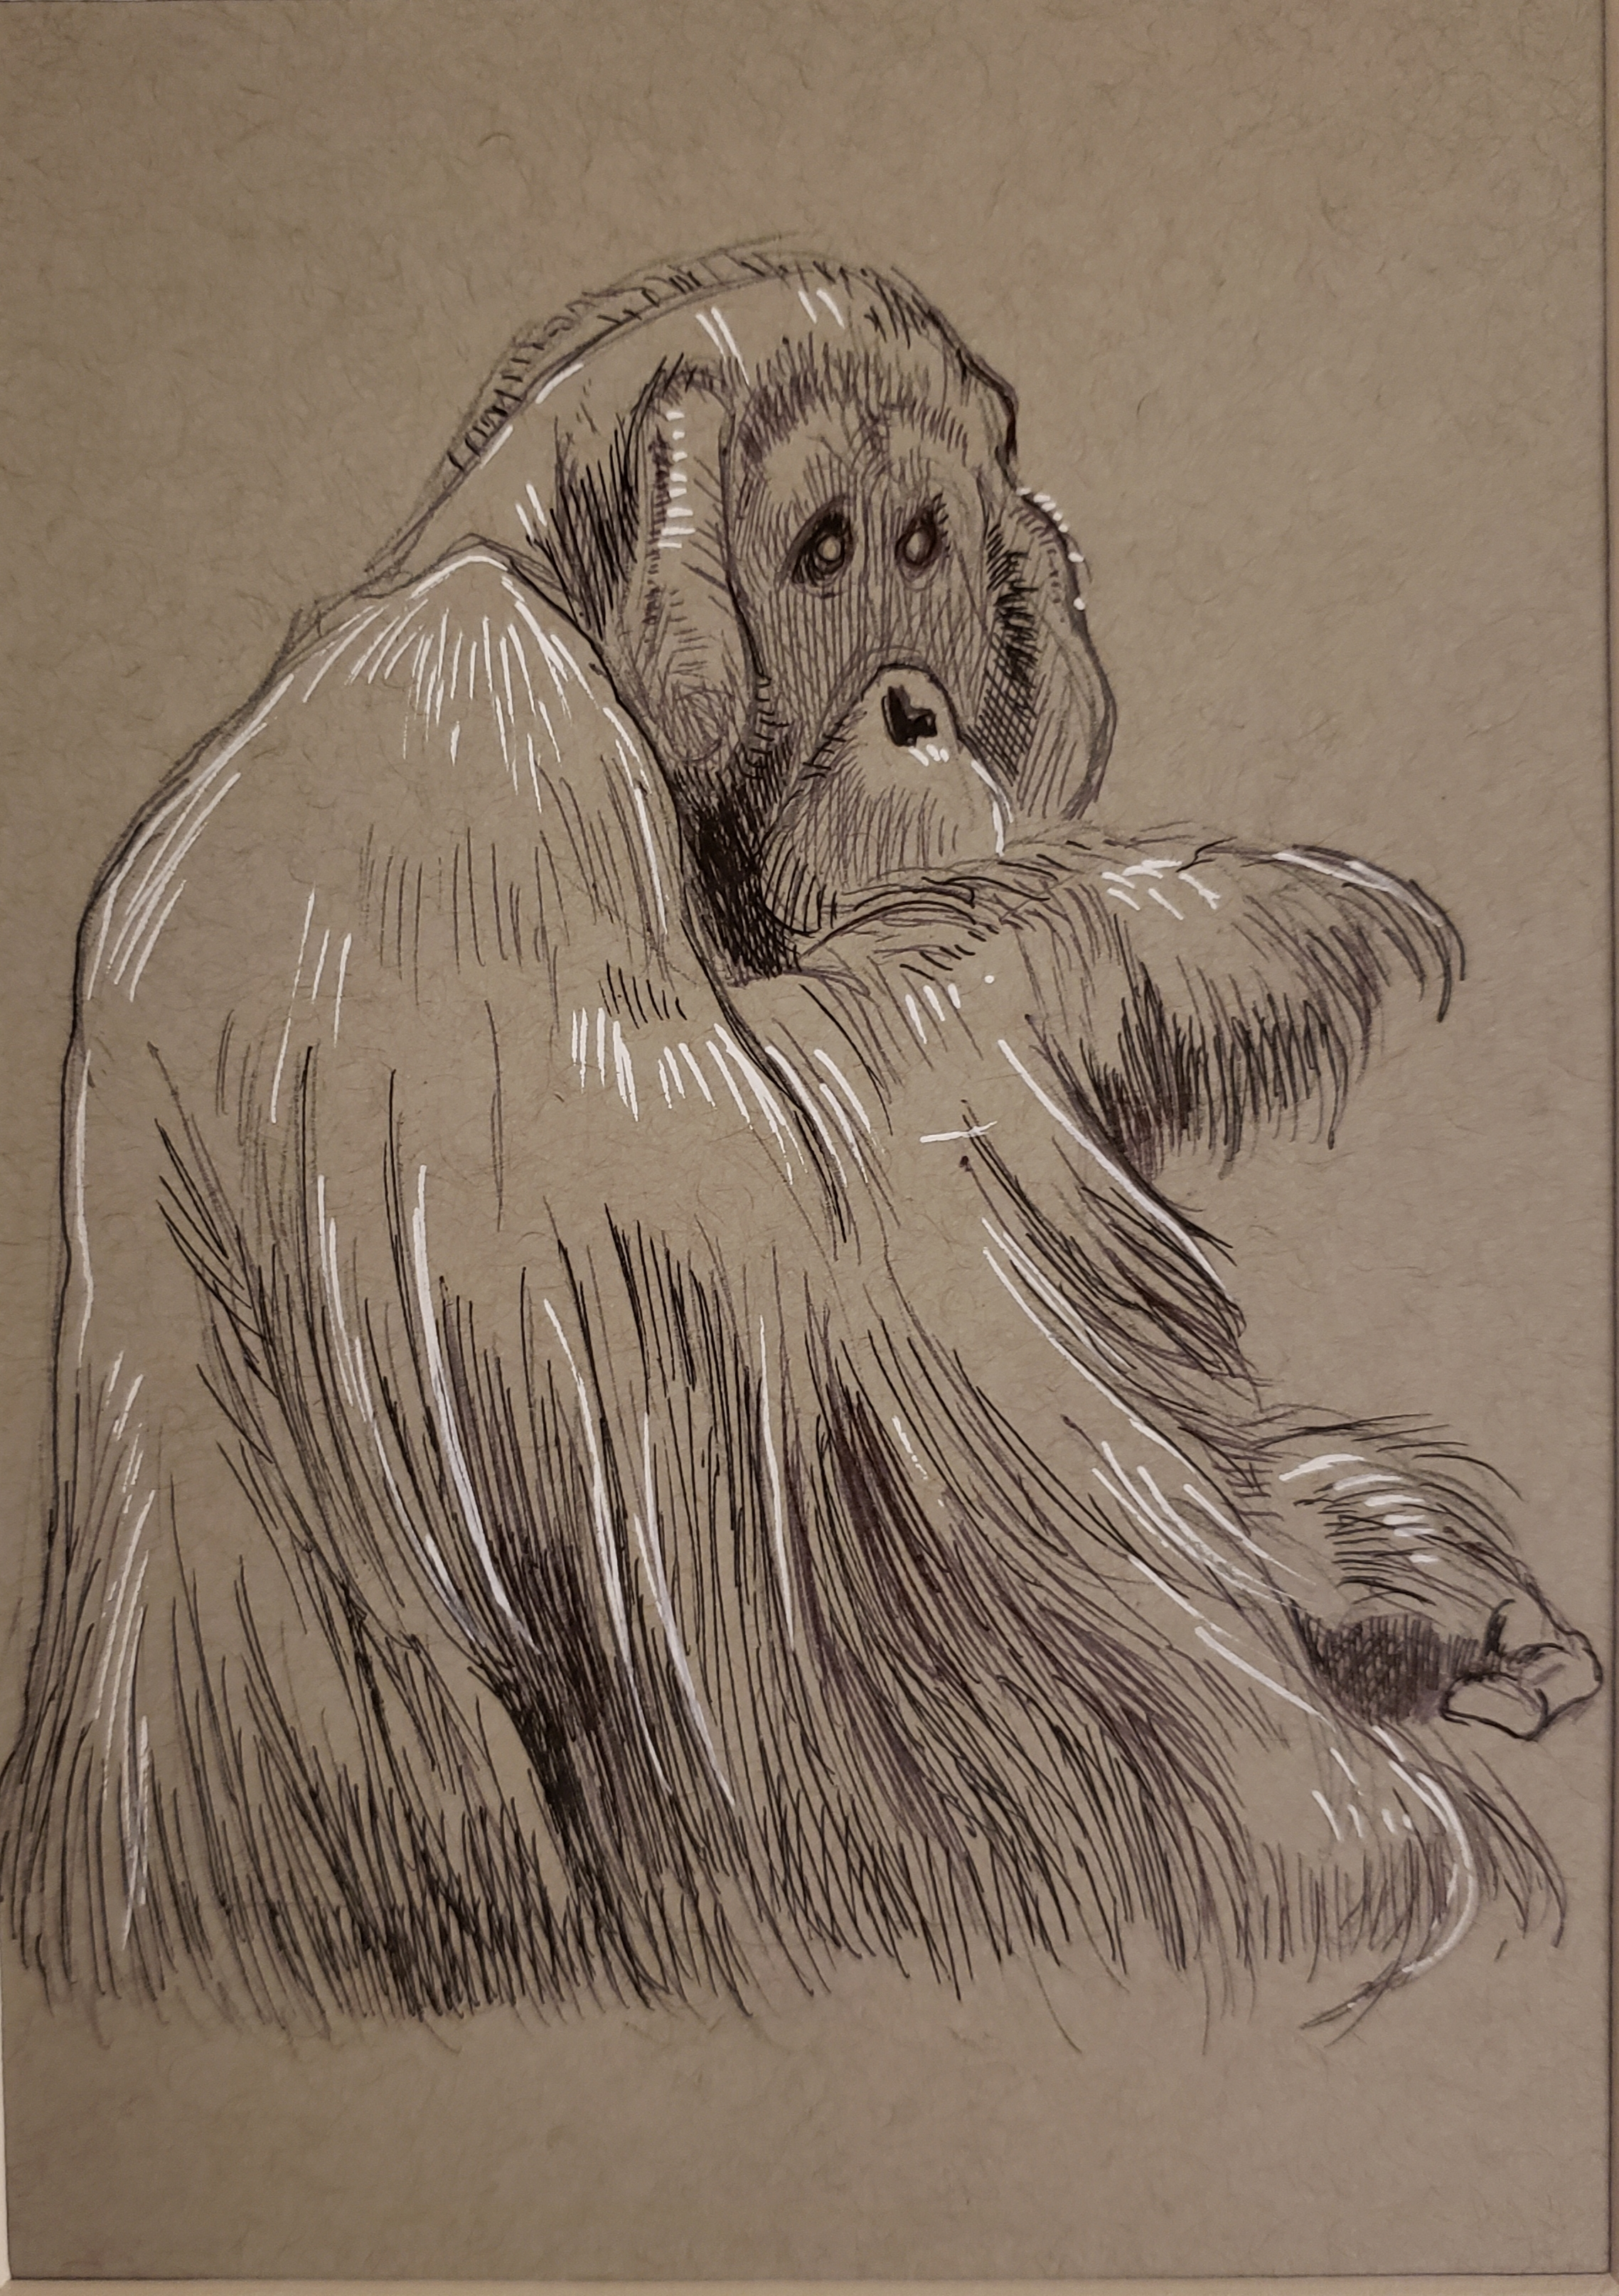 Male Orangutan Ink/Gel Pen on Toned Paper